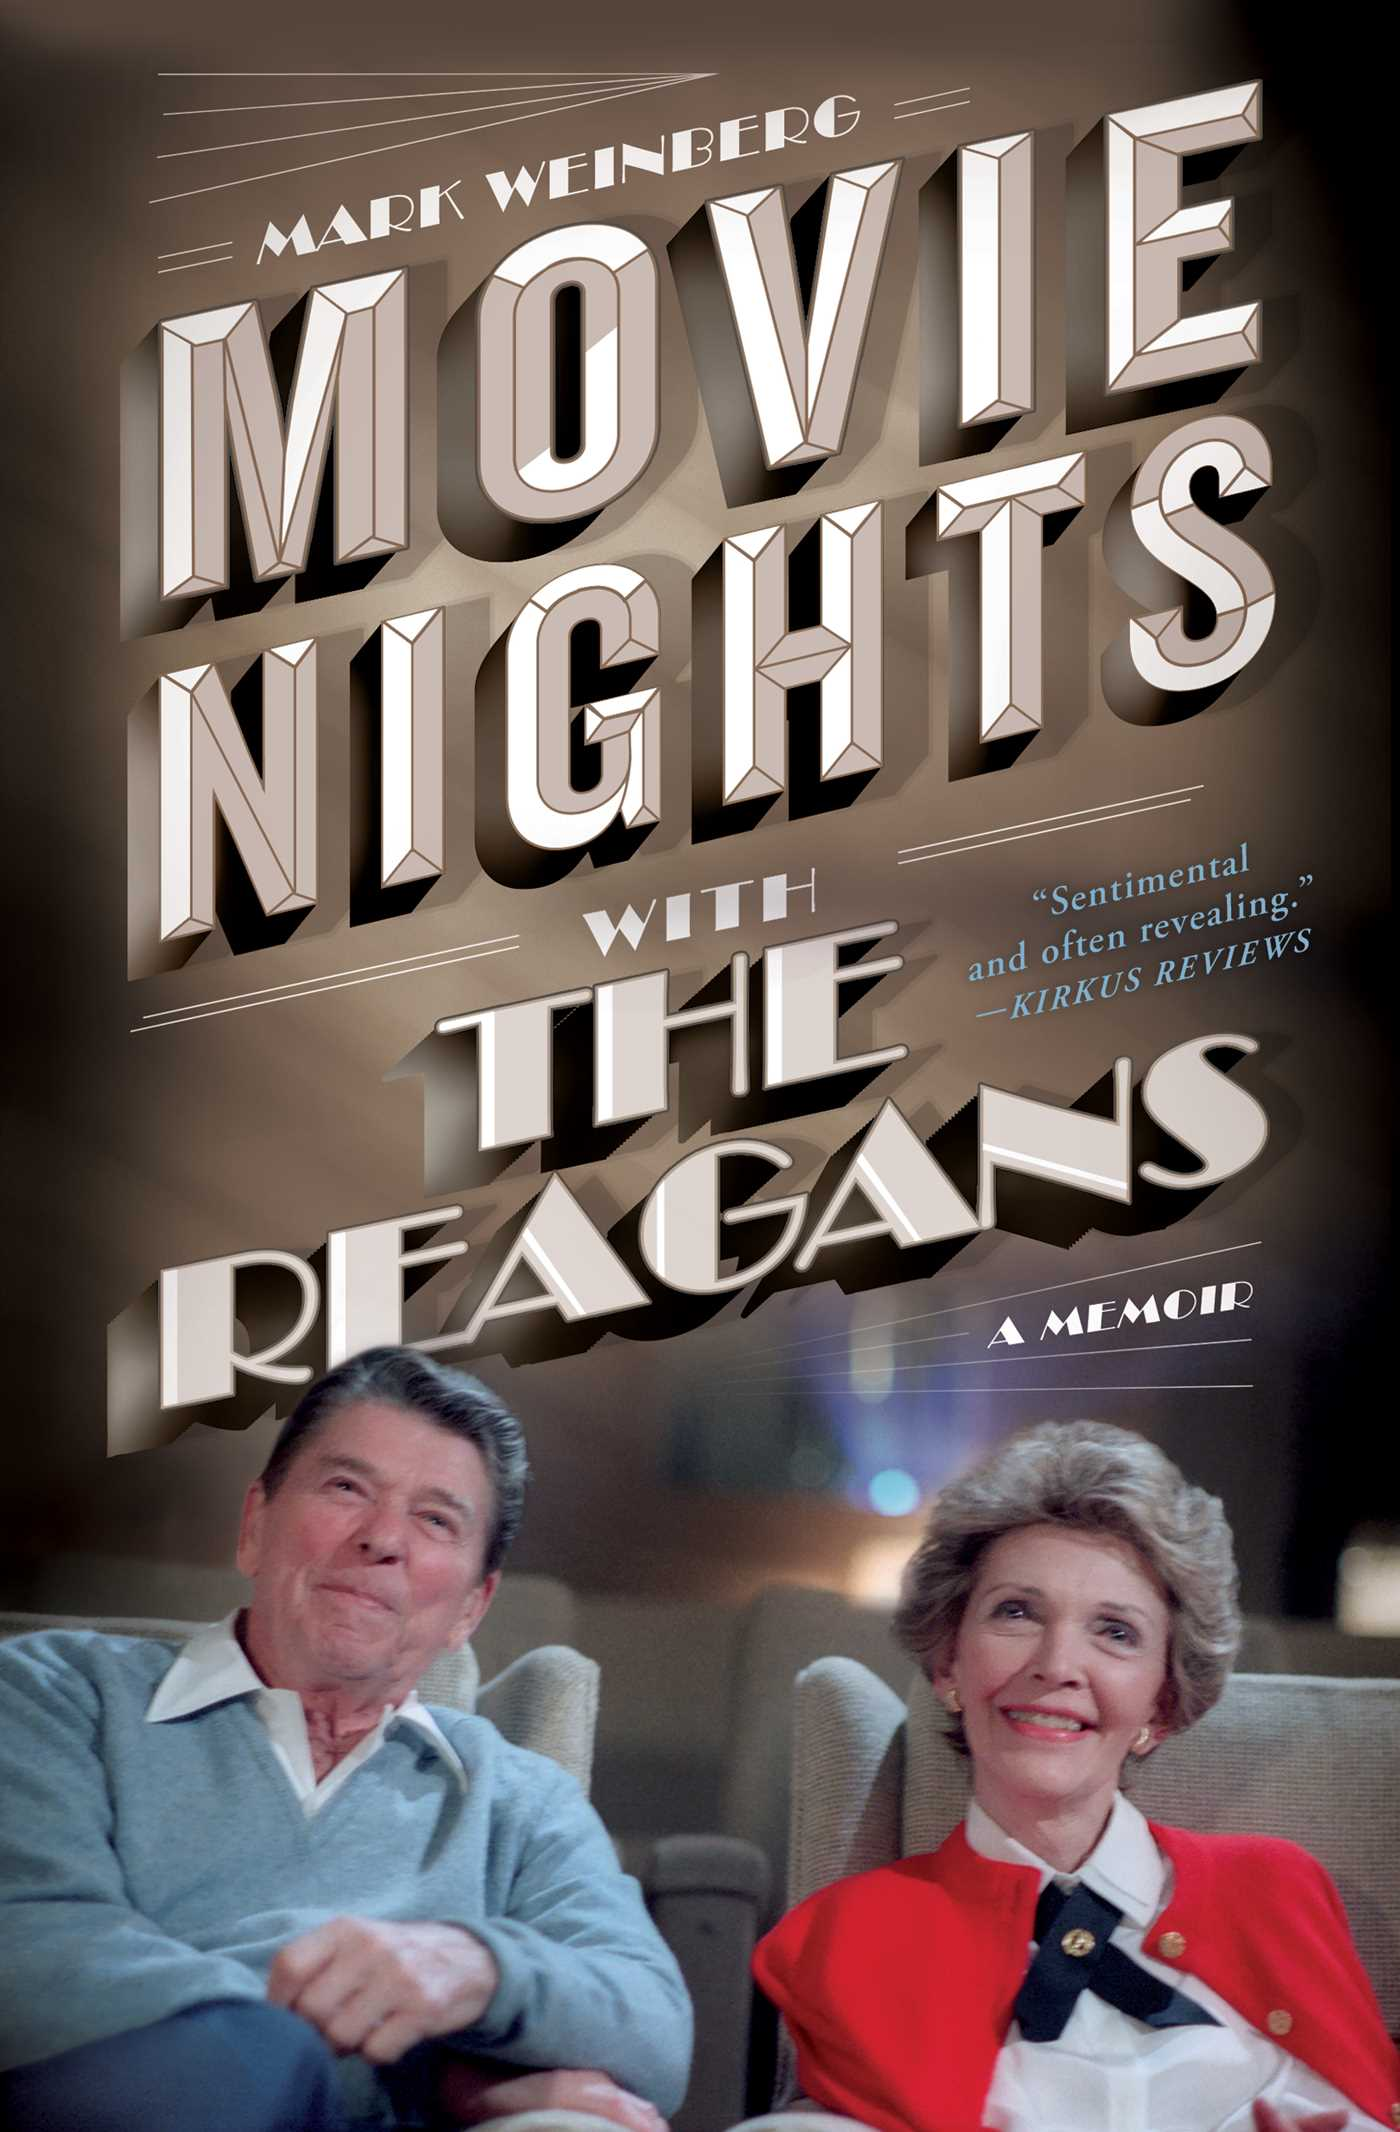 Movie nights with the reagans 9781501134012 hr